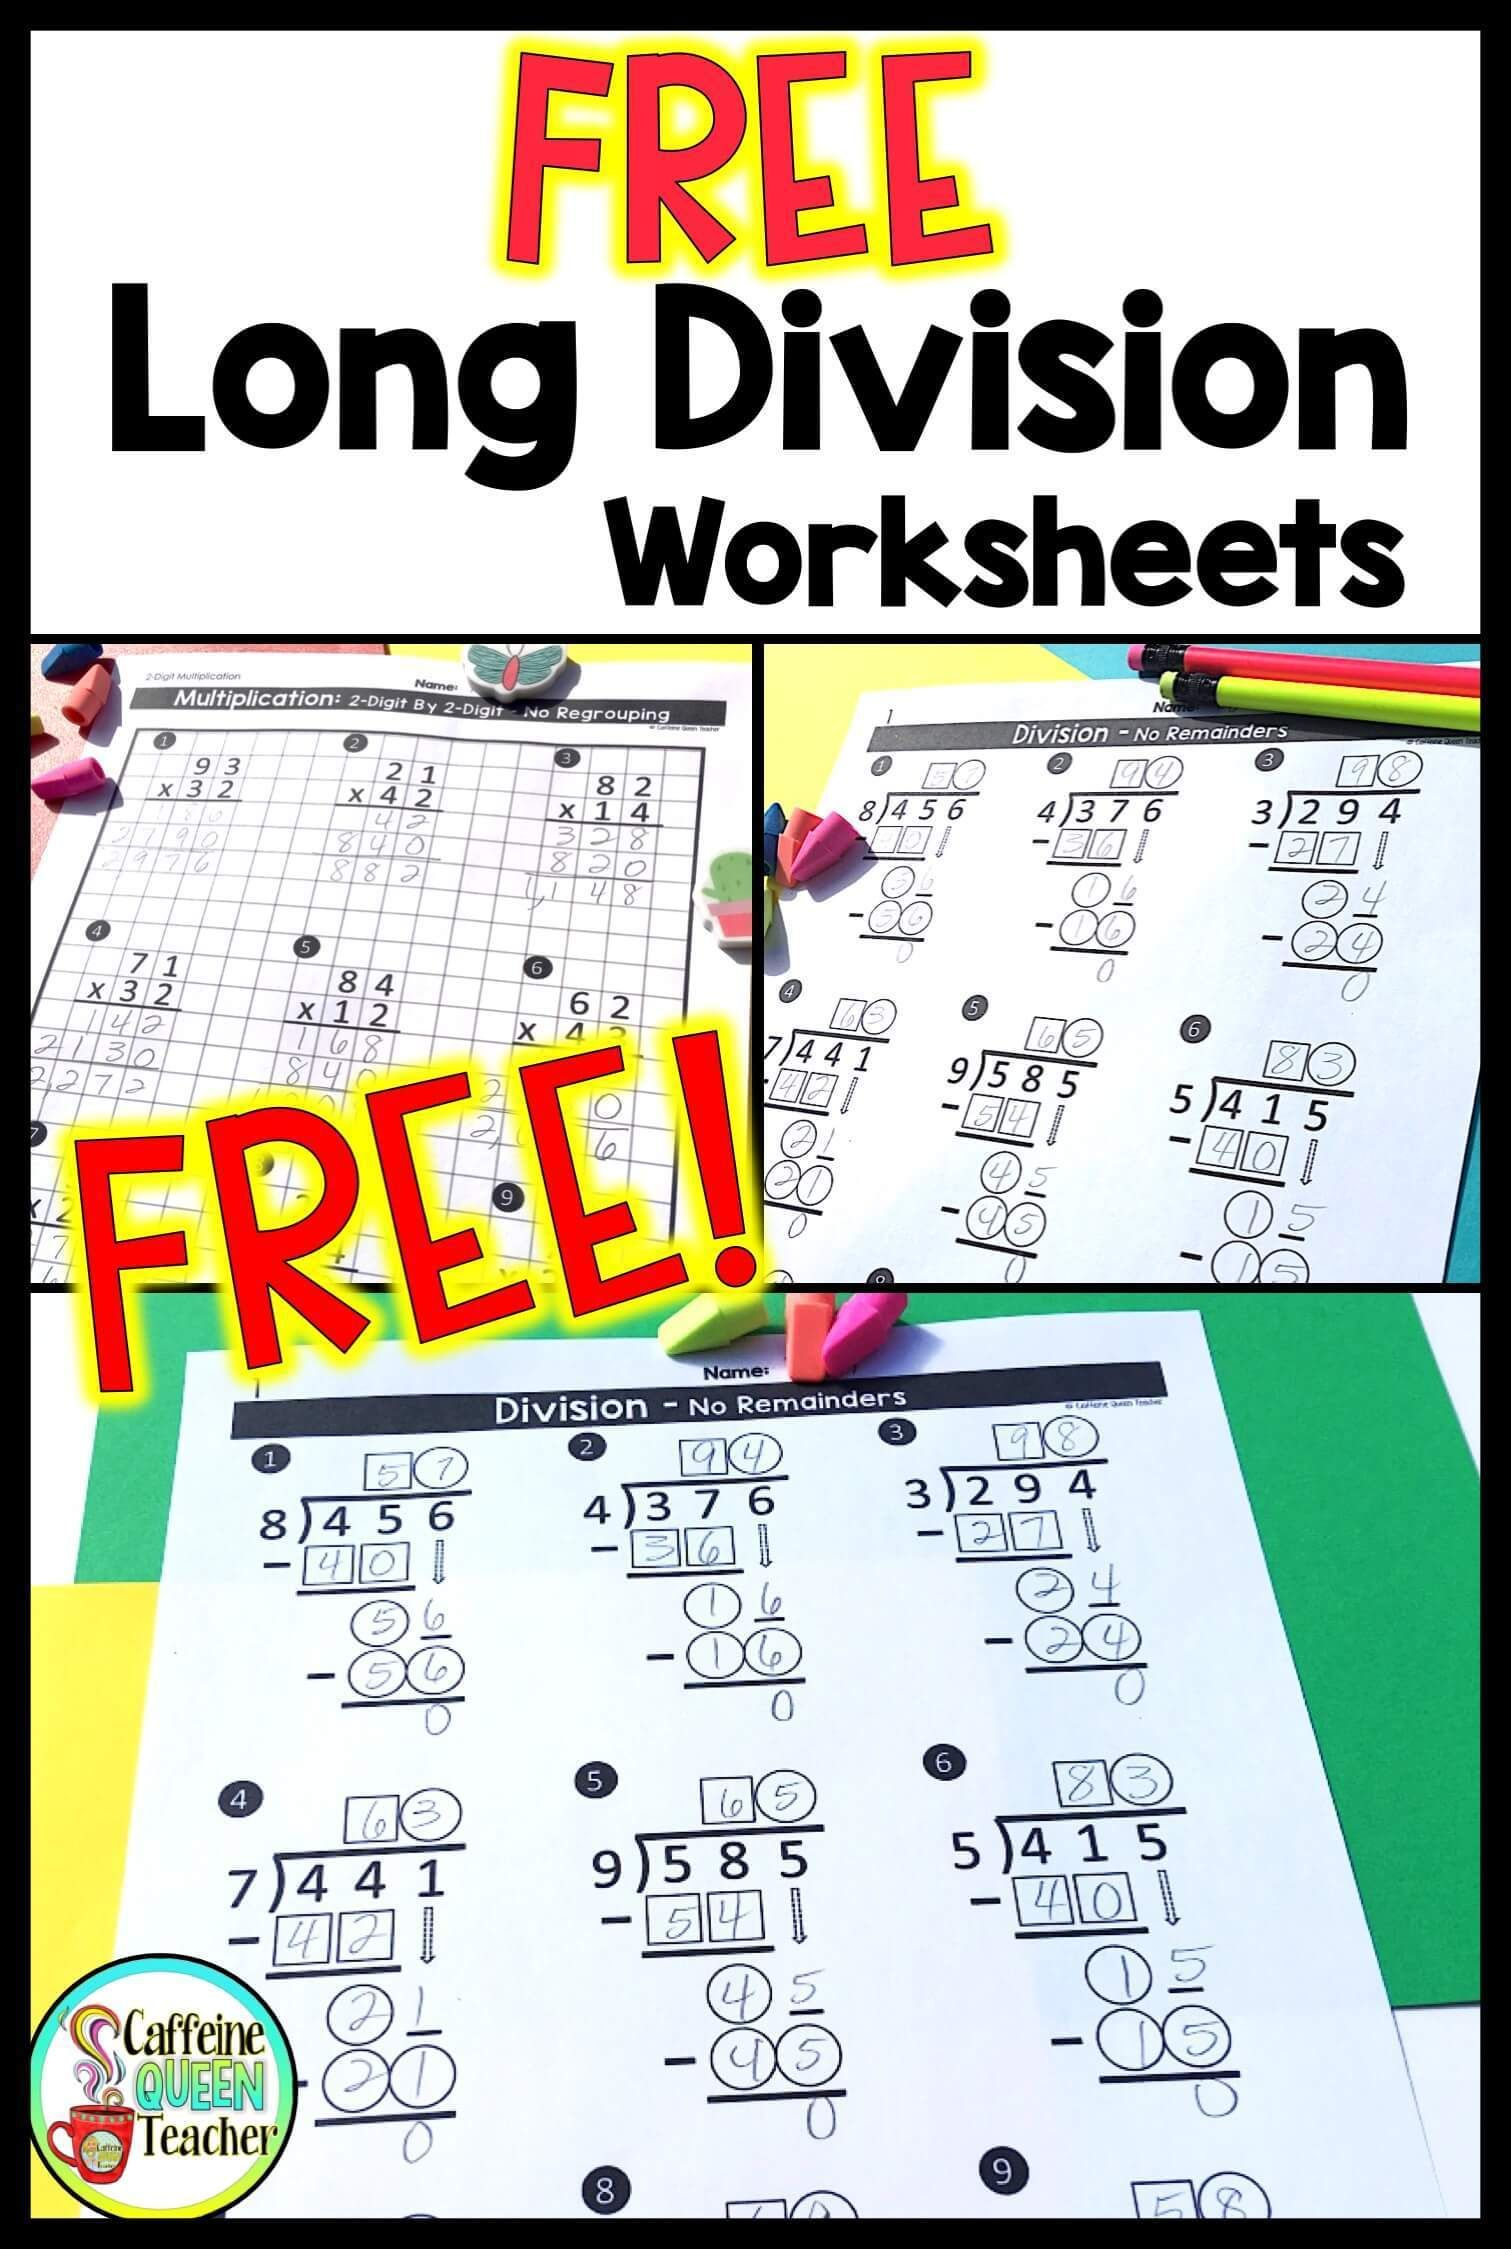 Division Worksheets Grade 5 Of Differentiated Long